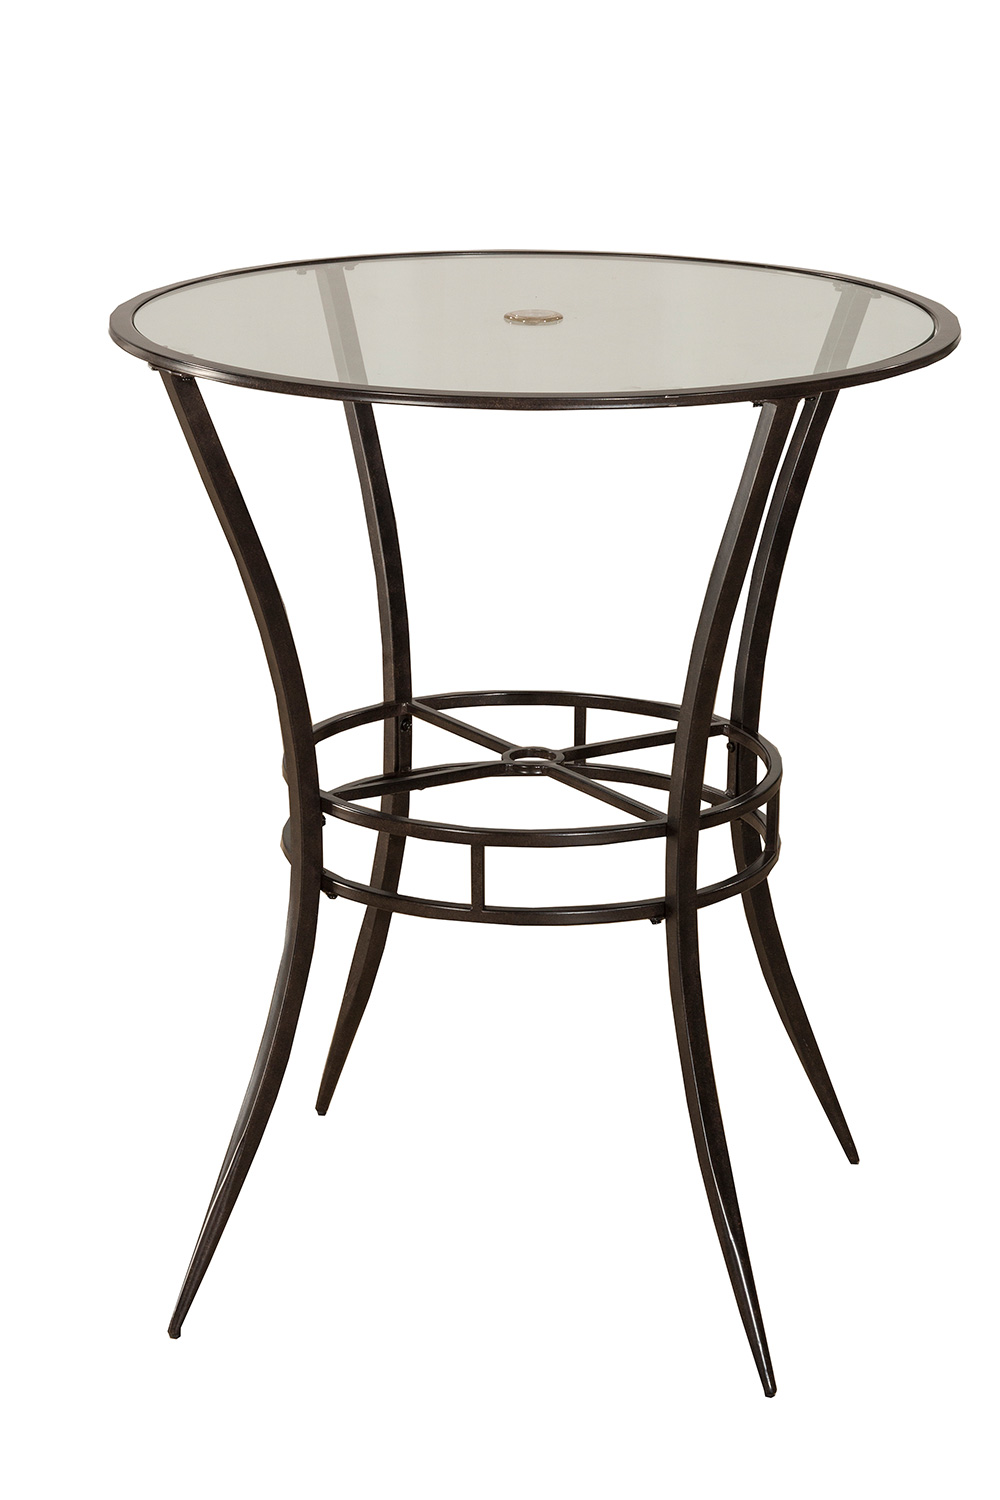 Hillsdale 6323PTB Indoor Outdoor Bar Height Bistro Table Antique Black HD 6